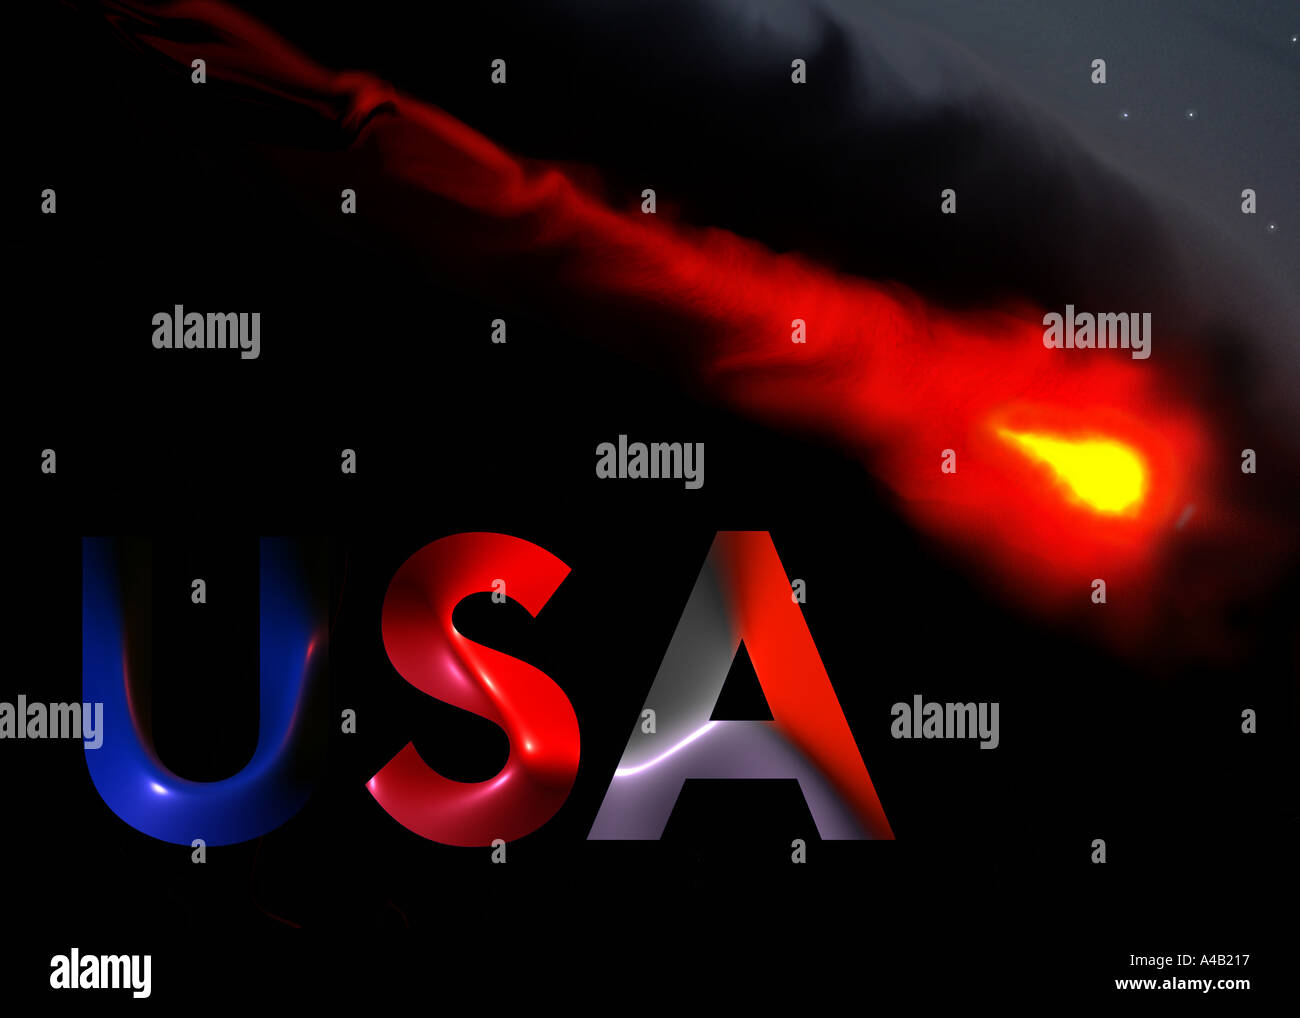 USA and terrorism - Stock Image